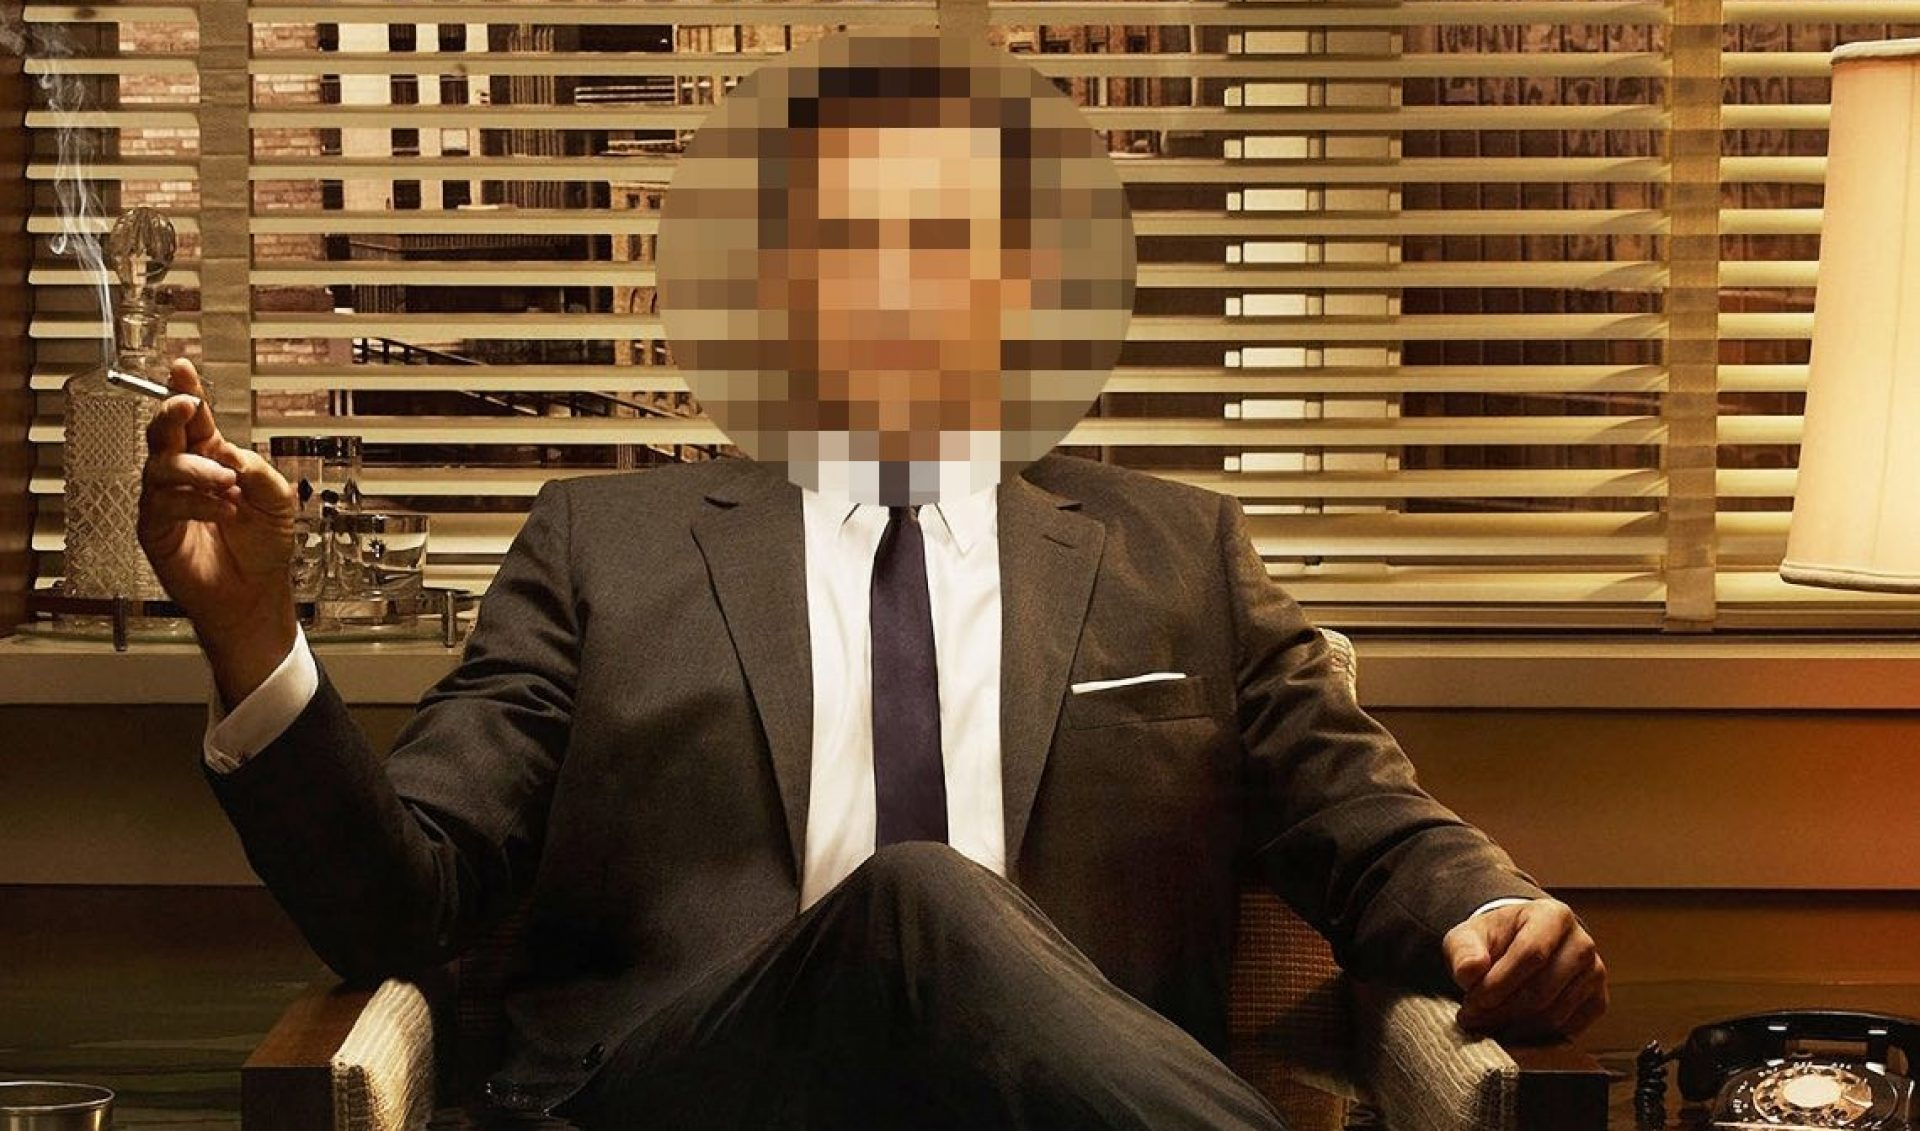 The Confessional: An Anonymous Interview With An Advertising Executive About The NewFronts And Digital Media